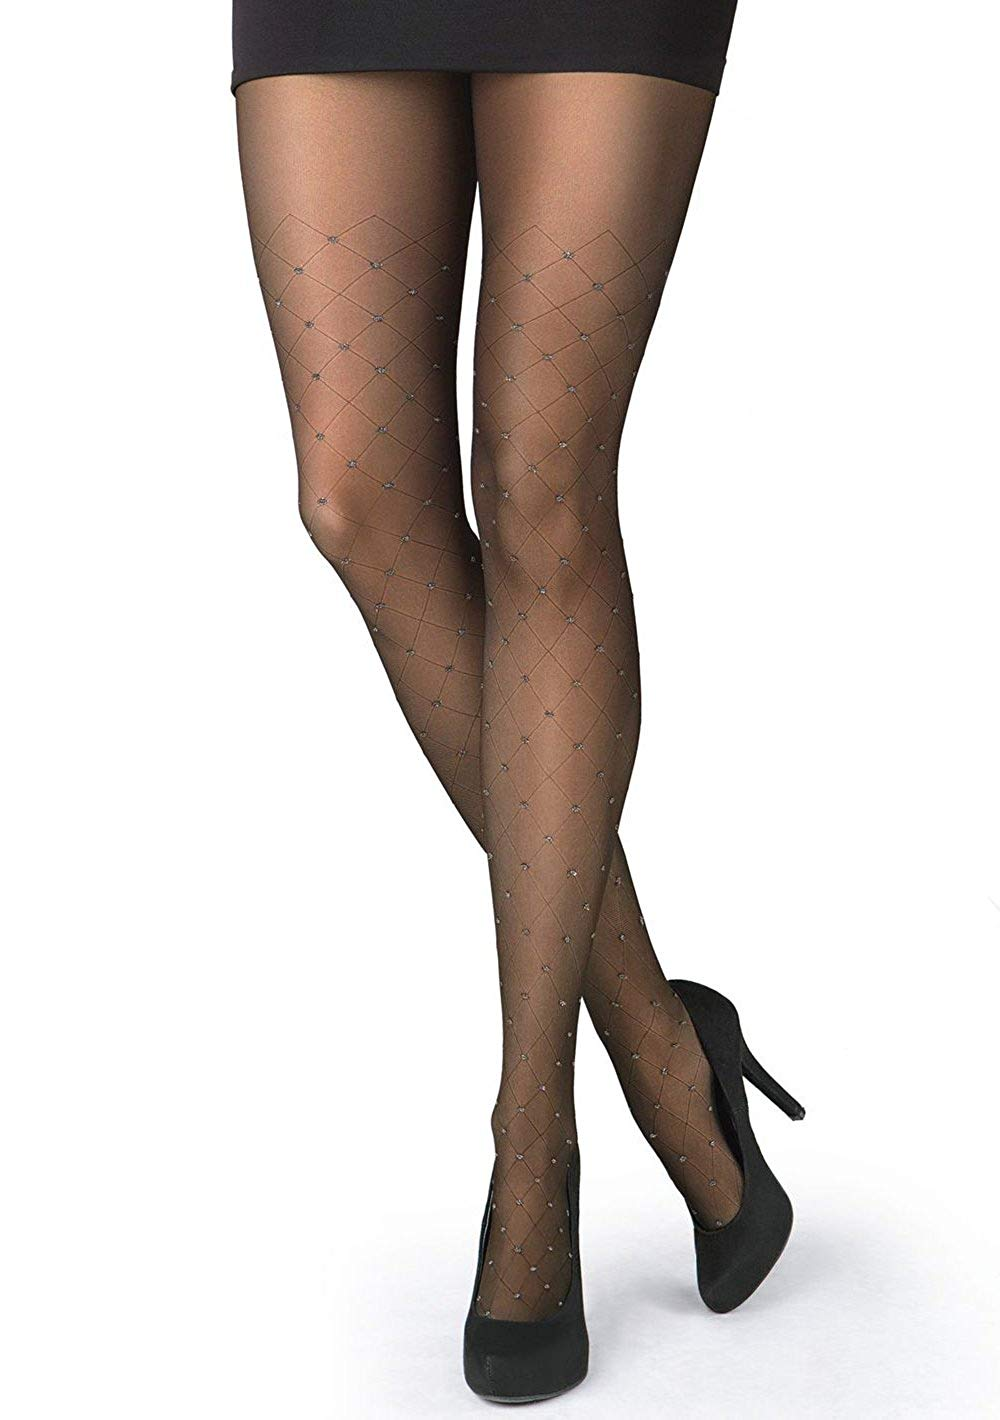 e57ee5ee74438 Get Quotations · Patterned Tights | Sheer Black Patterned Tights with  Sparkle Design | Gatta RONNA 27 [Made